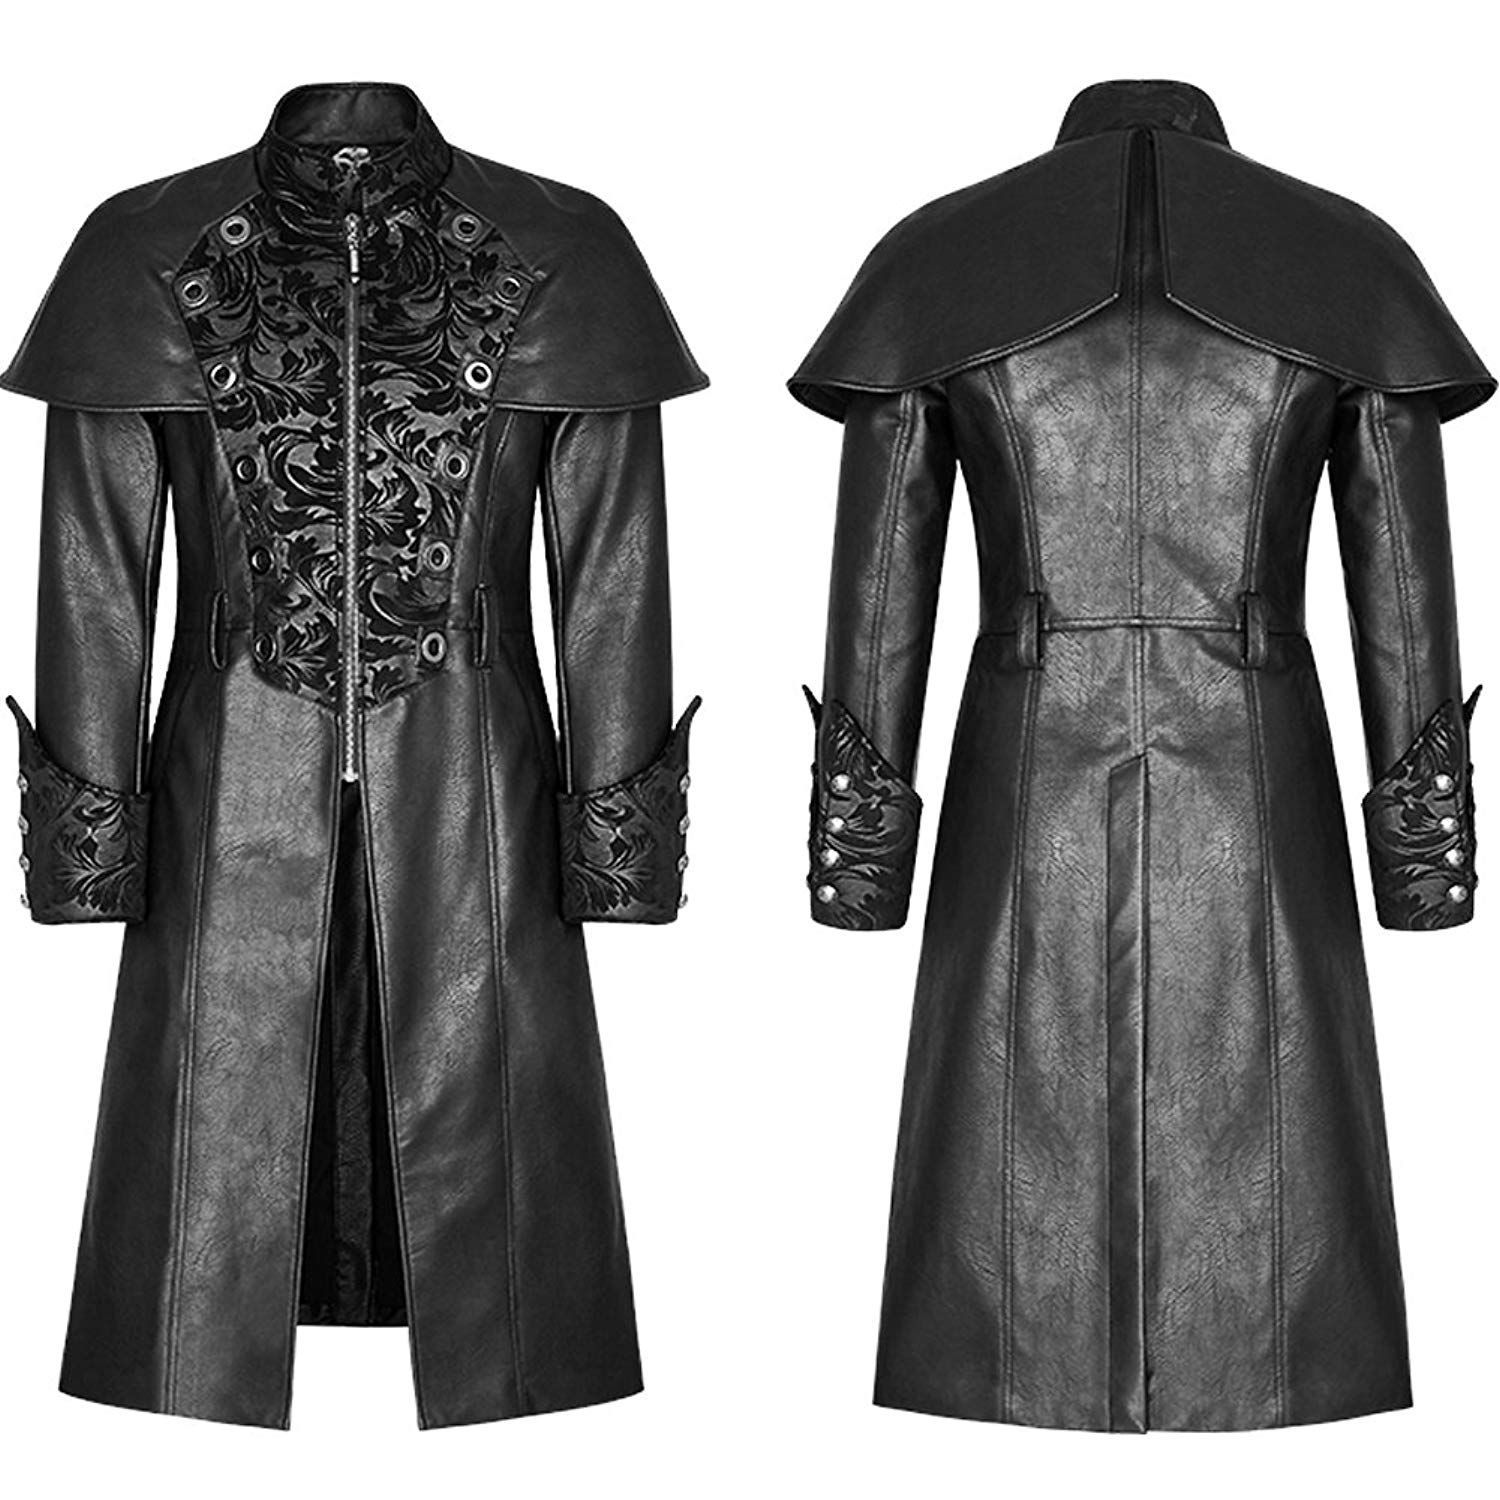 fd6759d1 Get Quotations · Punk Rave Mens Gothic Steampunk Jacket Coat Victorian  Military Style Damask Winter Classic Leather Trench Coat